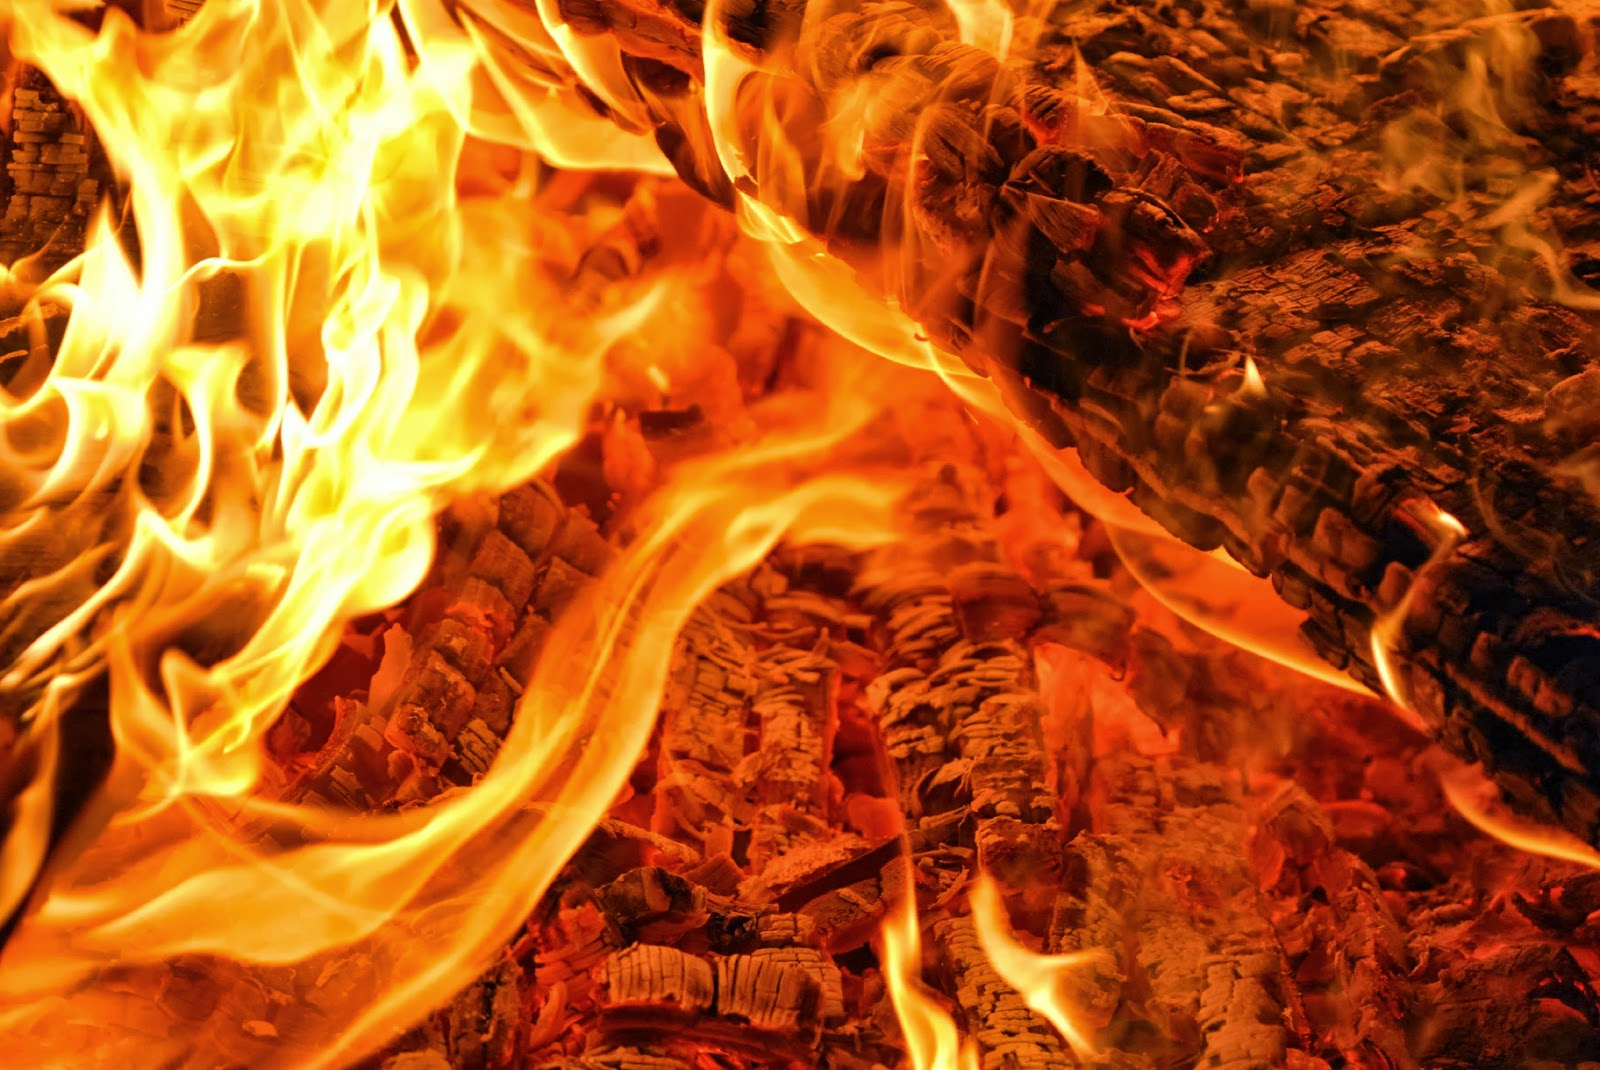 Hd Wallpapers Blog: Fire Flames Wallpapers